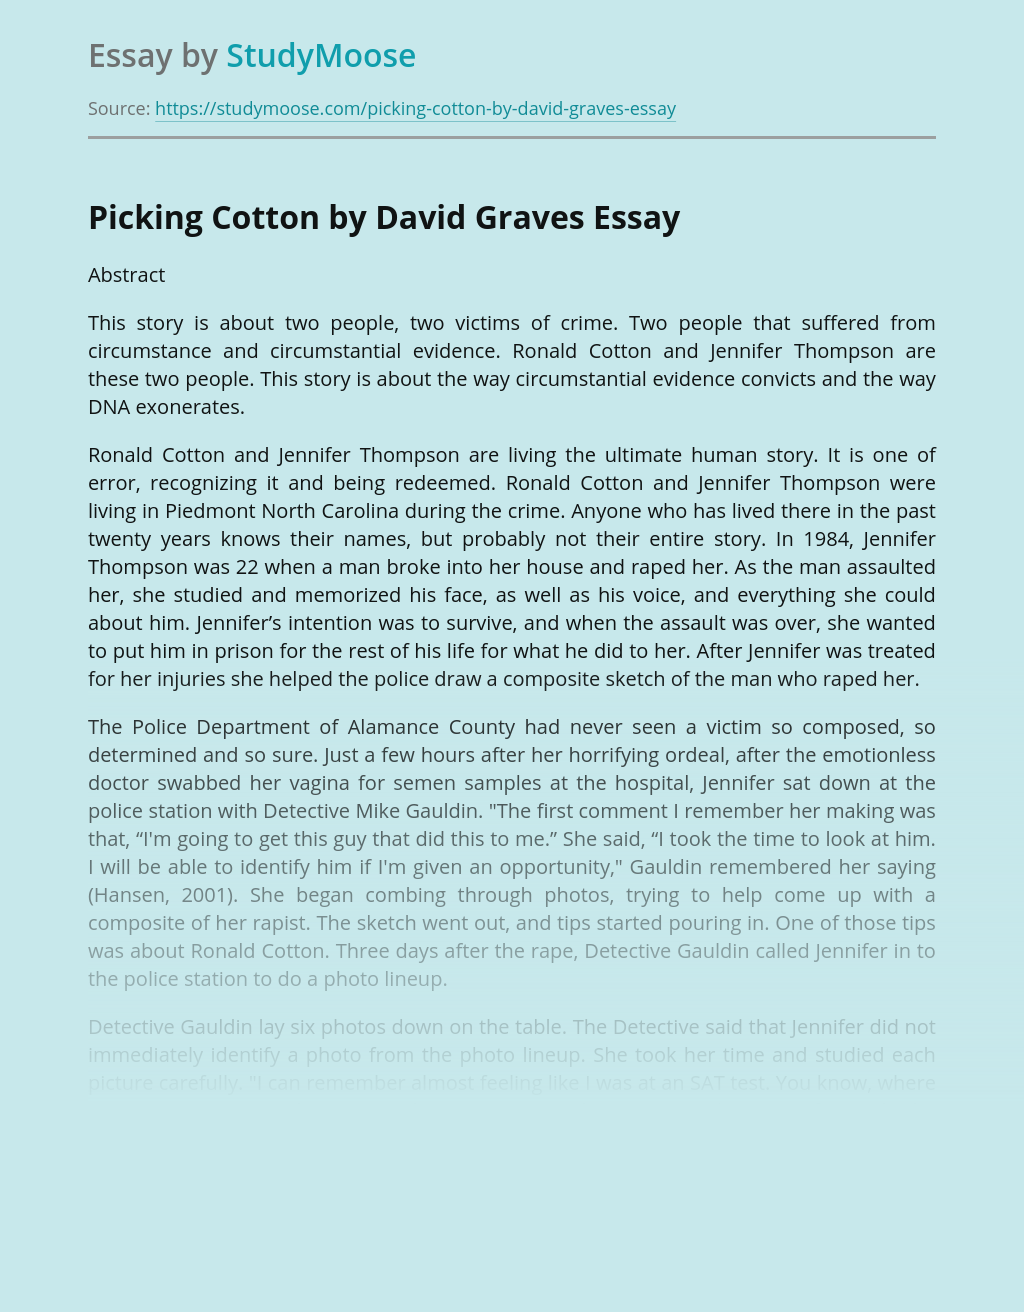 Picking Cotton by David Graves